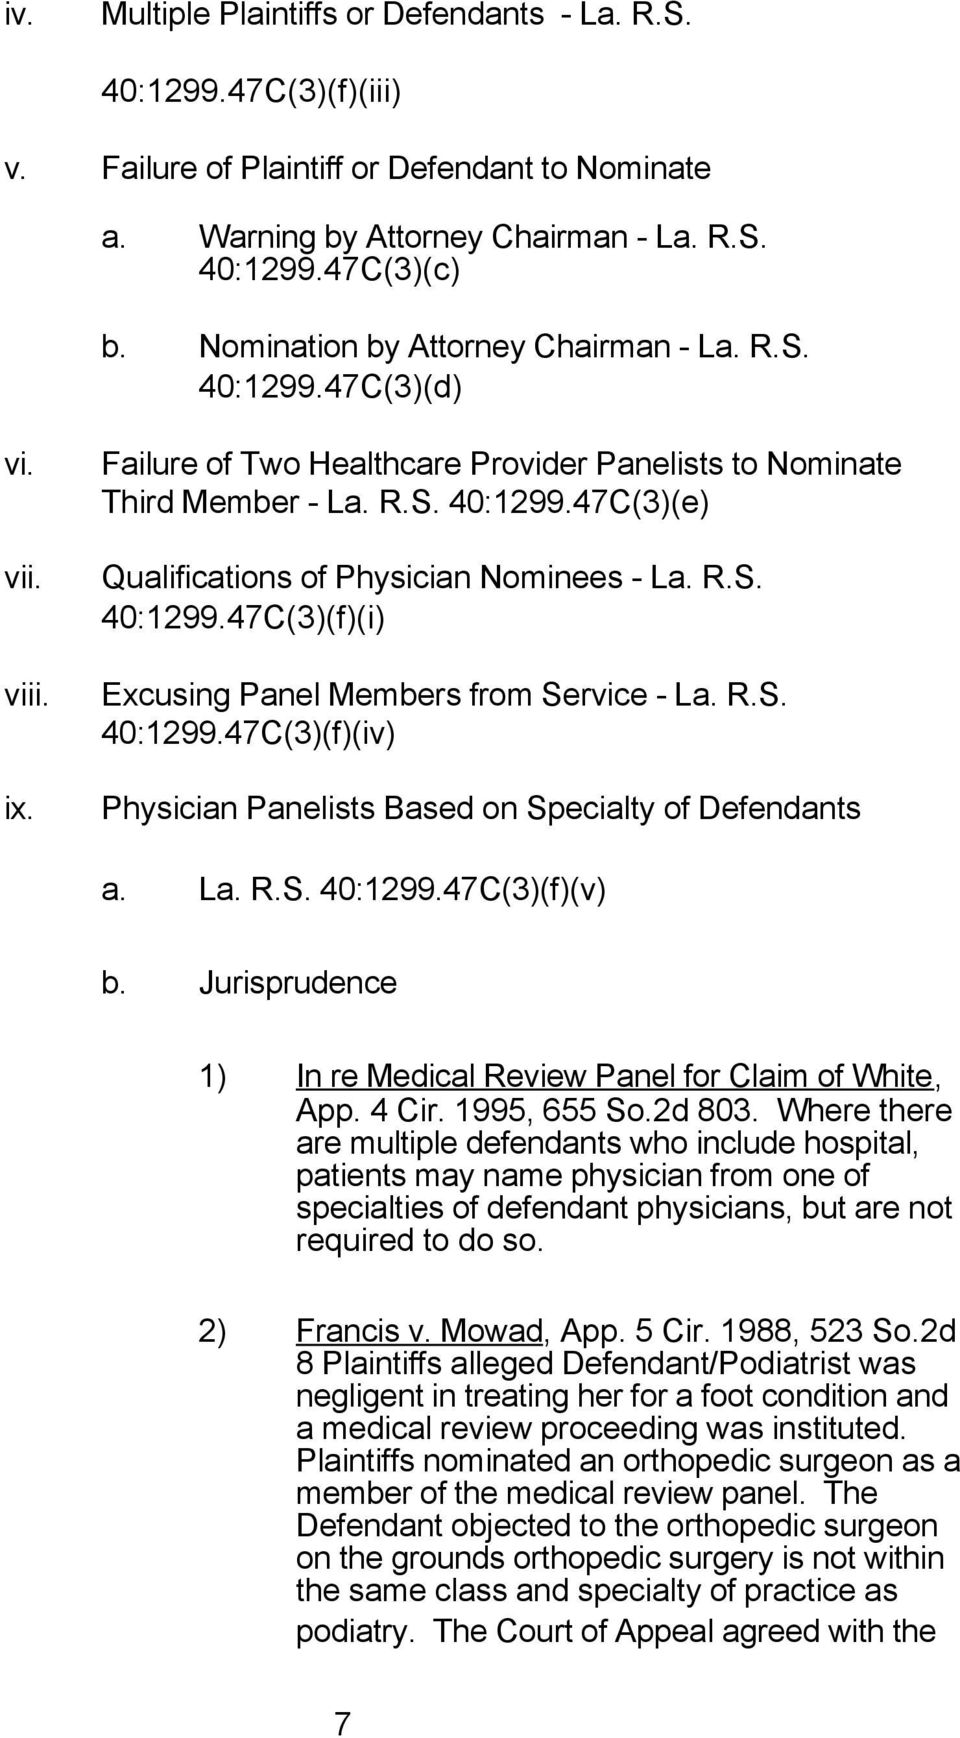 R.S. 40:1299.47C(3)(f)(i) Excusing Panel Members from Service - La. R.S. 40:1299.47C(3)(f)(iv) Physician Panelists Based on Specialty of Defendants a. La. R.S. 40:1299.47C(3)(f)(v) b.